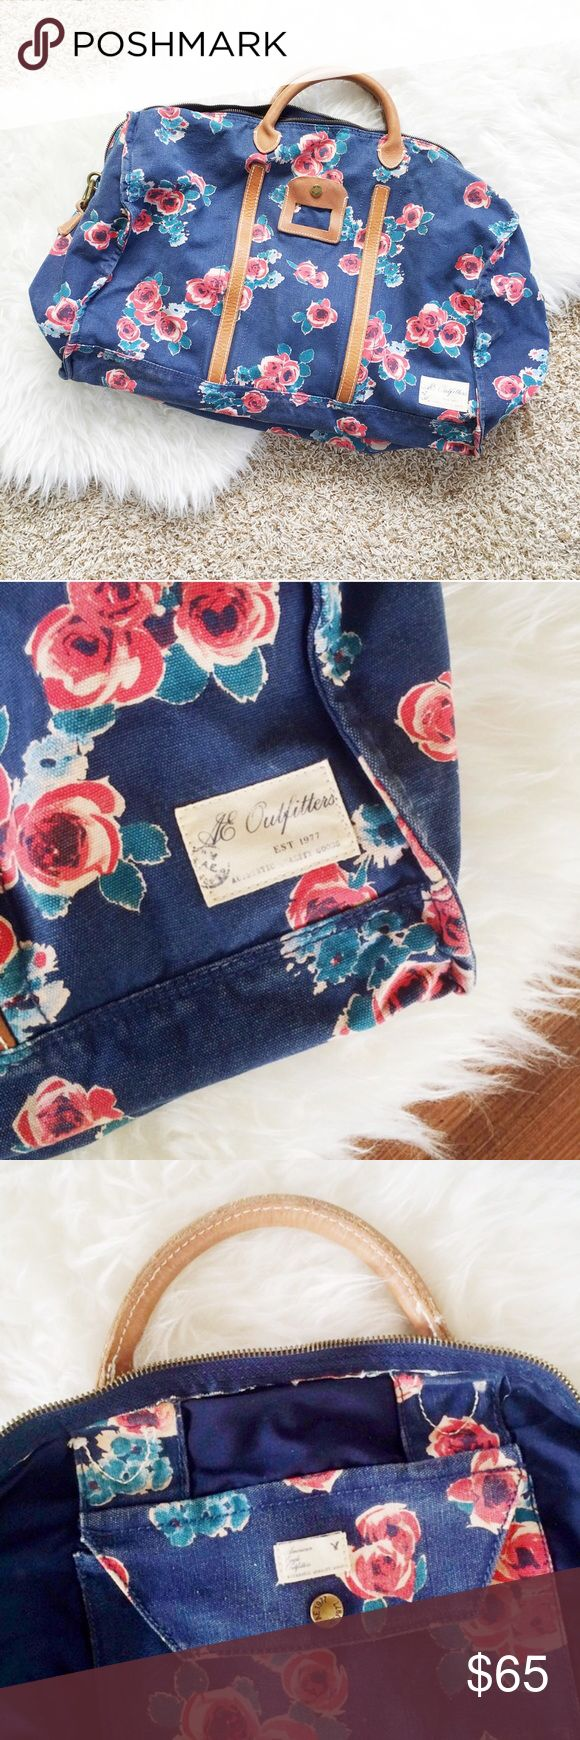 Floral Weekender Bag Navy and floral weekender bag from American Eagle. Comes with a heavy duty adjustable strap and one interior pocket. Used once, in great condition. American Eagle Outfitters Bags Travel Bags